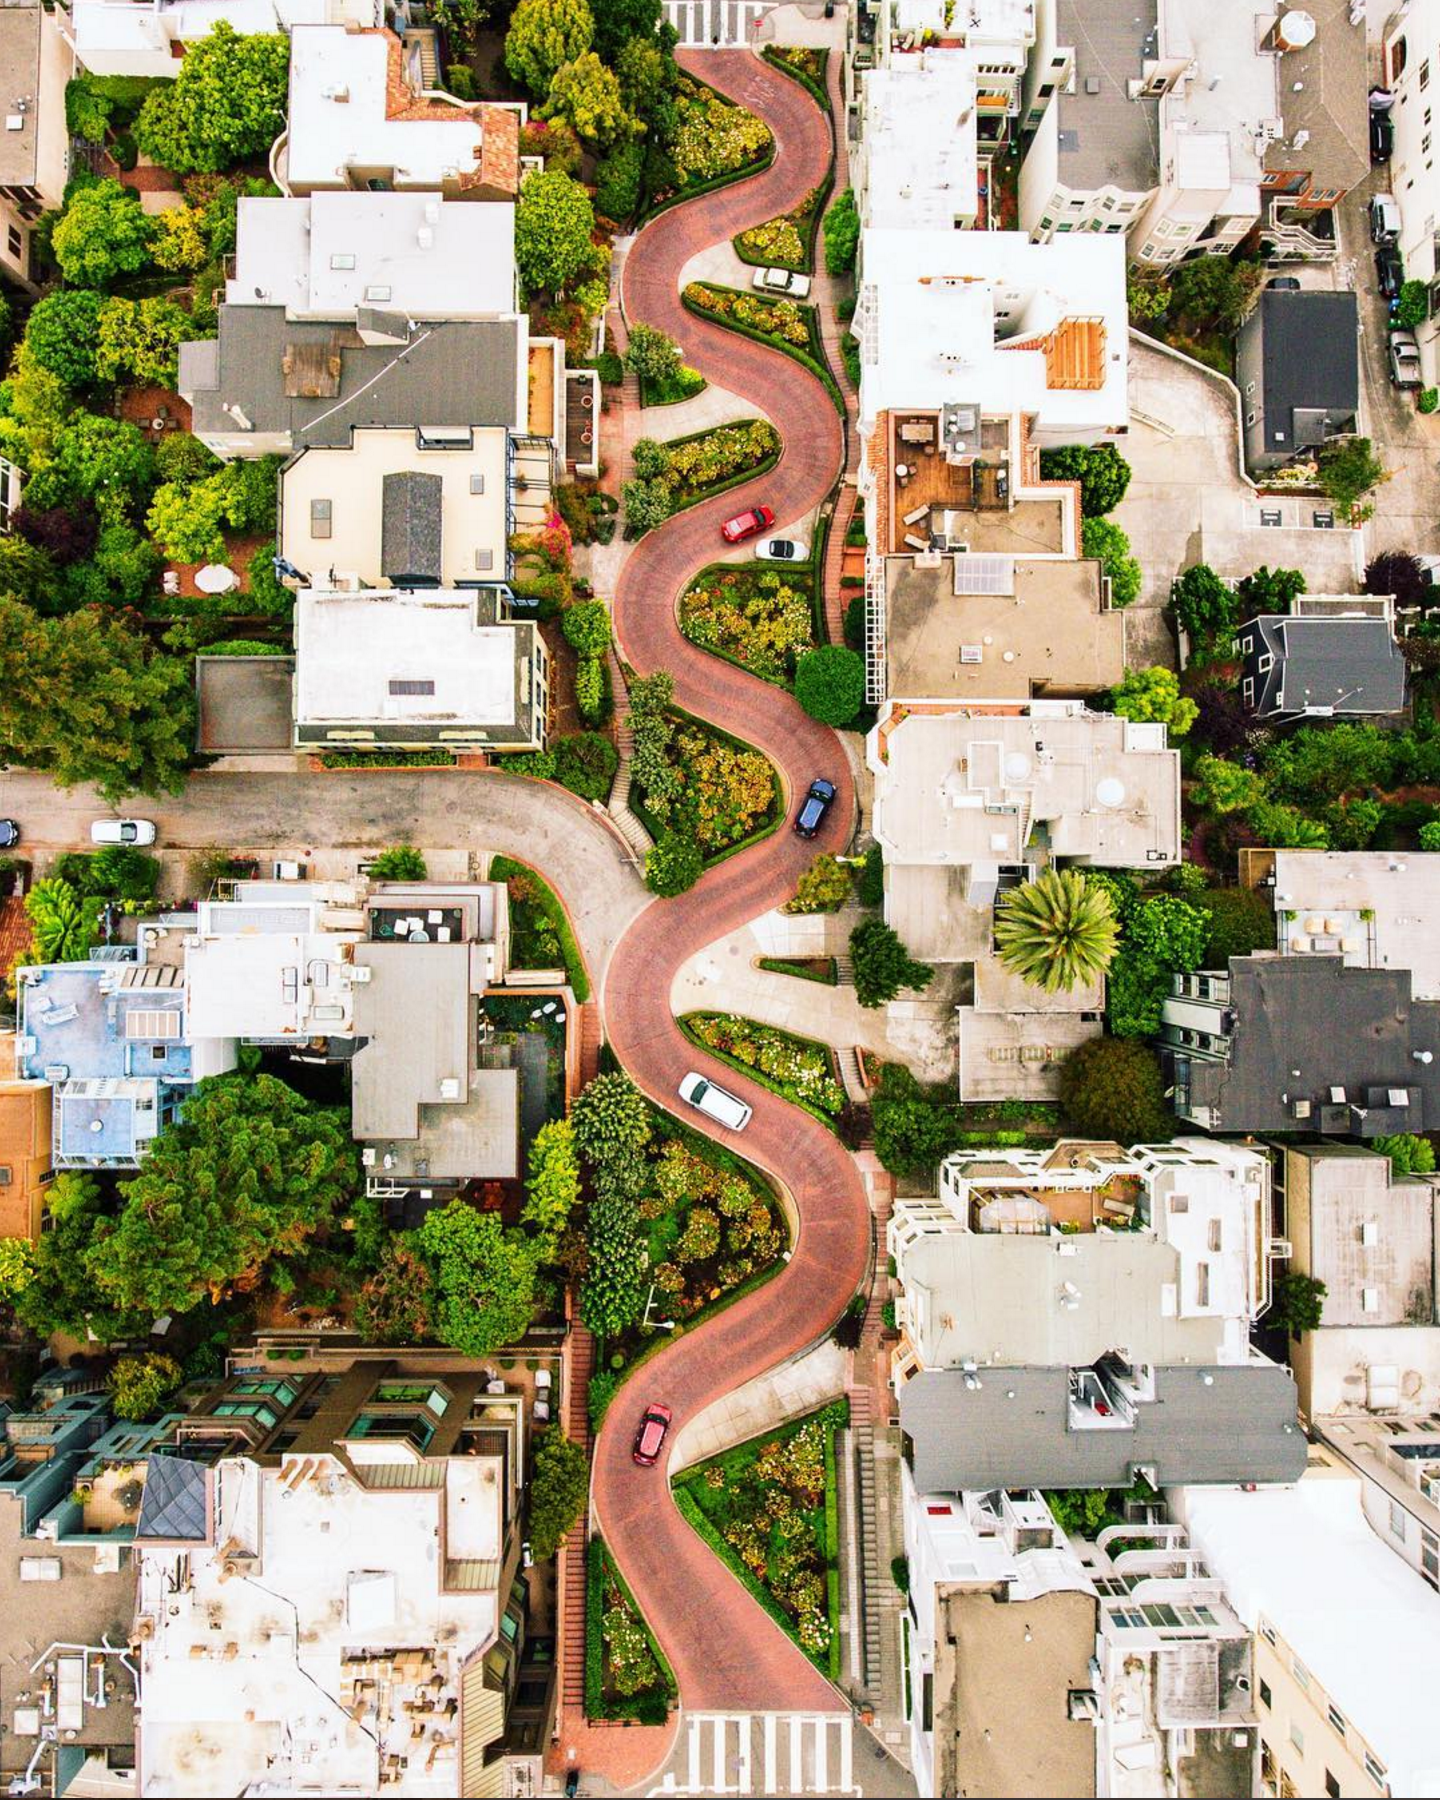 """8/30/2016   Lombard Street   San Francisco, California, USA  37.802317, -122.419740    Lombard Street runs from east to west in San Francisco, California, USA. With eight hairpin turns dispersed over a one-block section in the Russian Hill neighborhood, Lombard is often referred to as """"the most crooked street in the world."""""""